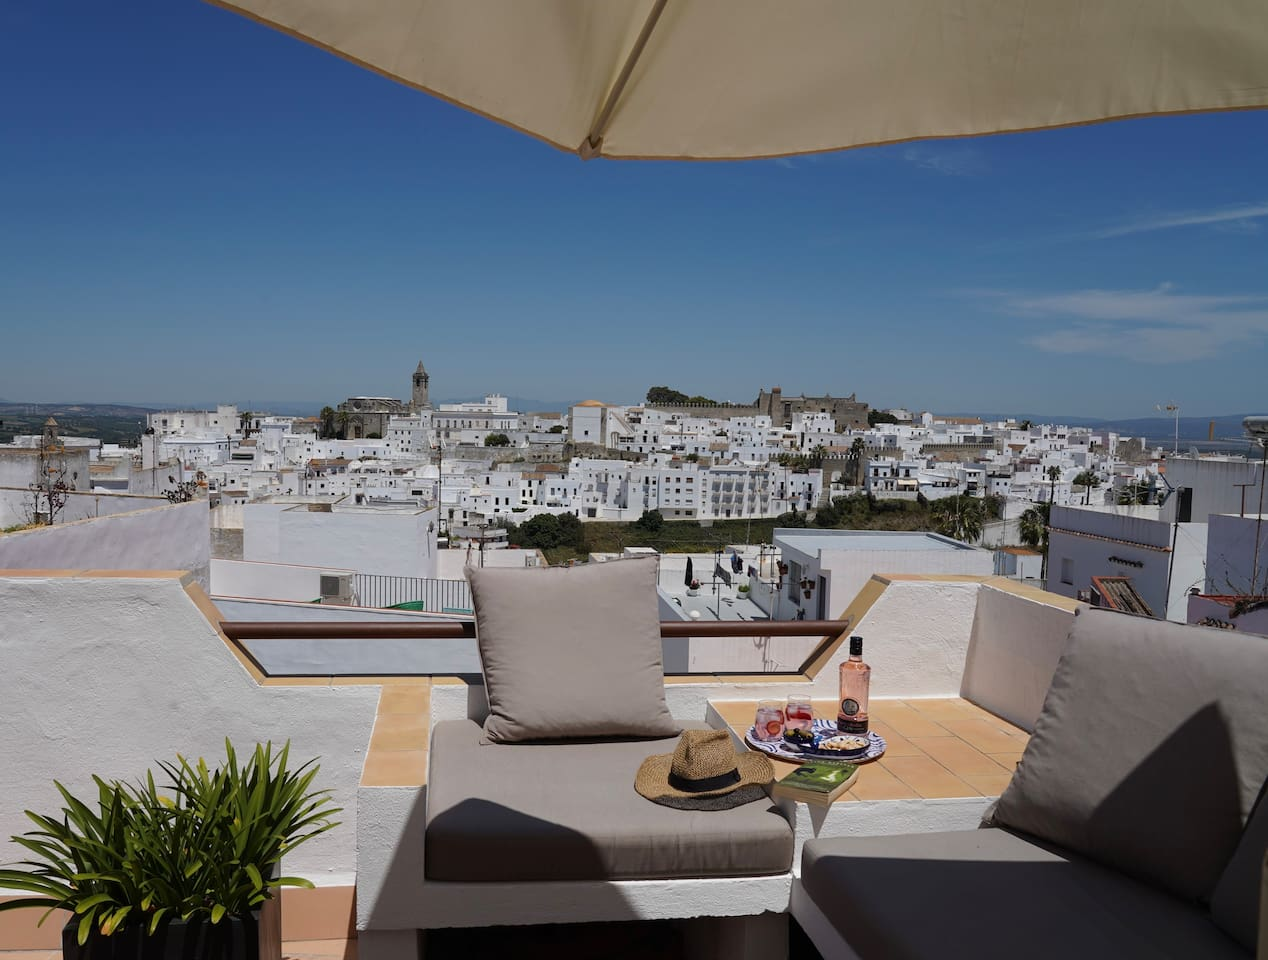 Welcome to your view from the roof terrace at Casa Colina Blanca.  Bienvenido a su vista desde la terraza de la azotea en Casa Colina Blanca.